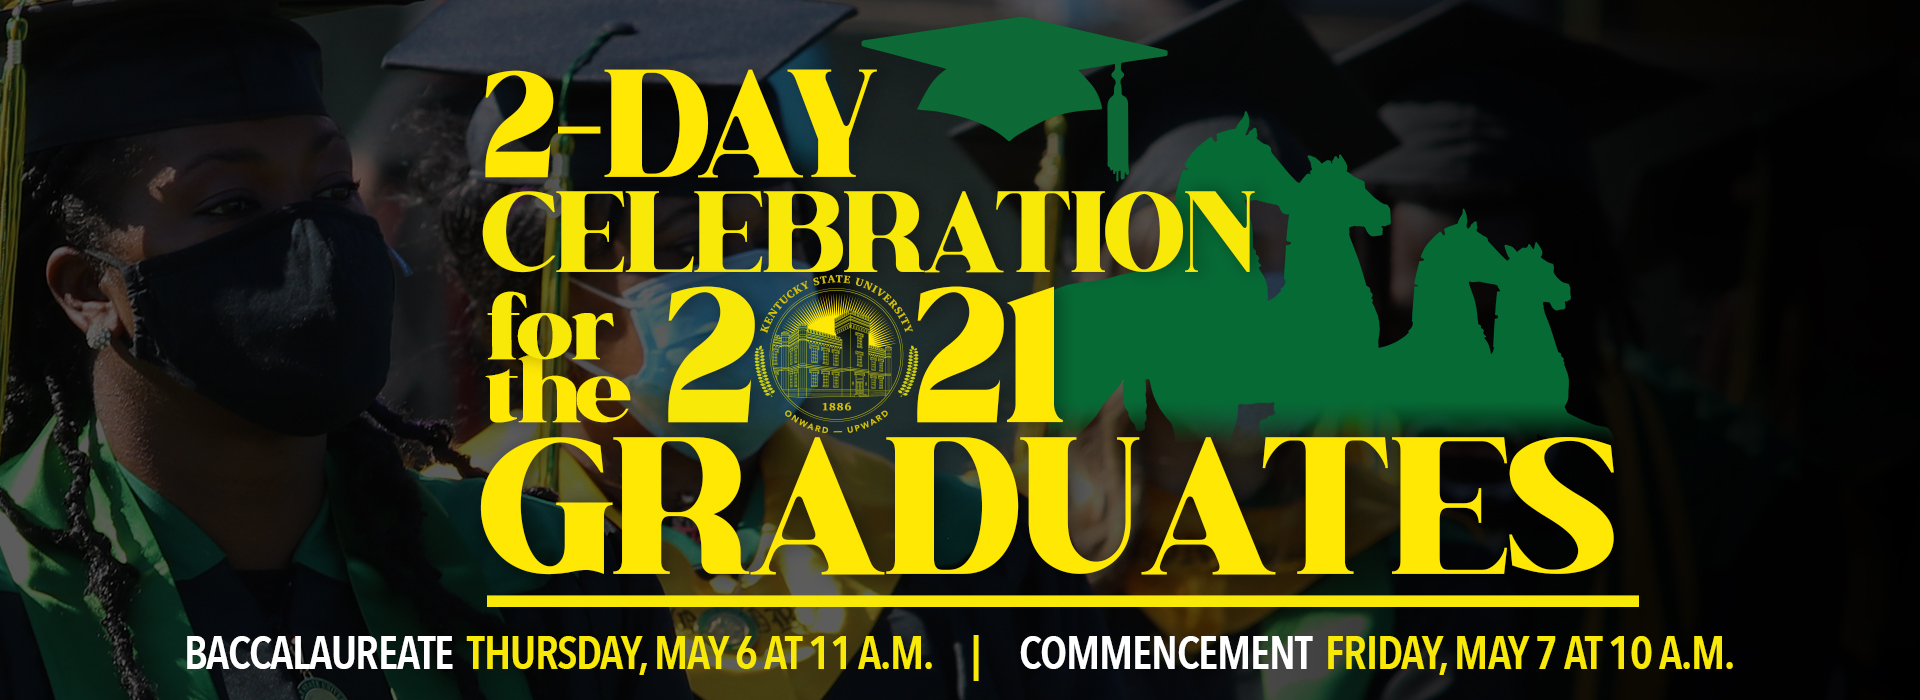 Spring Commencement 2021 homepage graphic